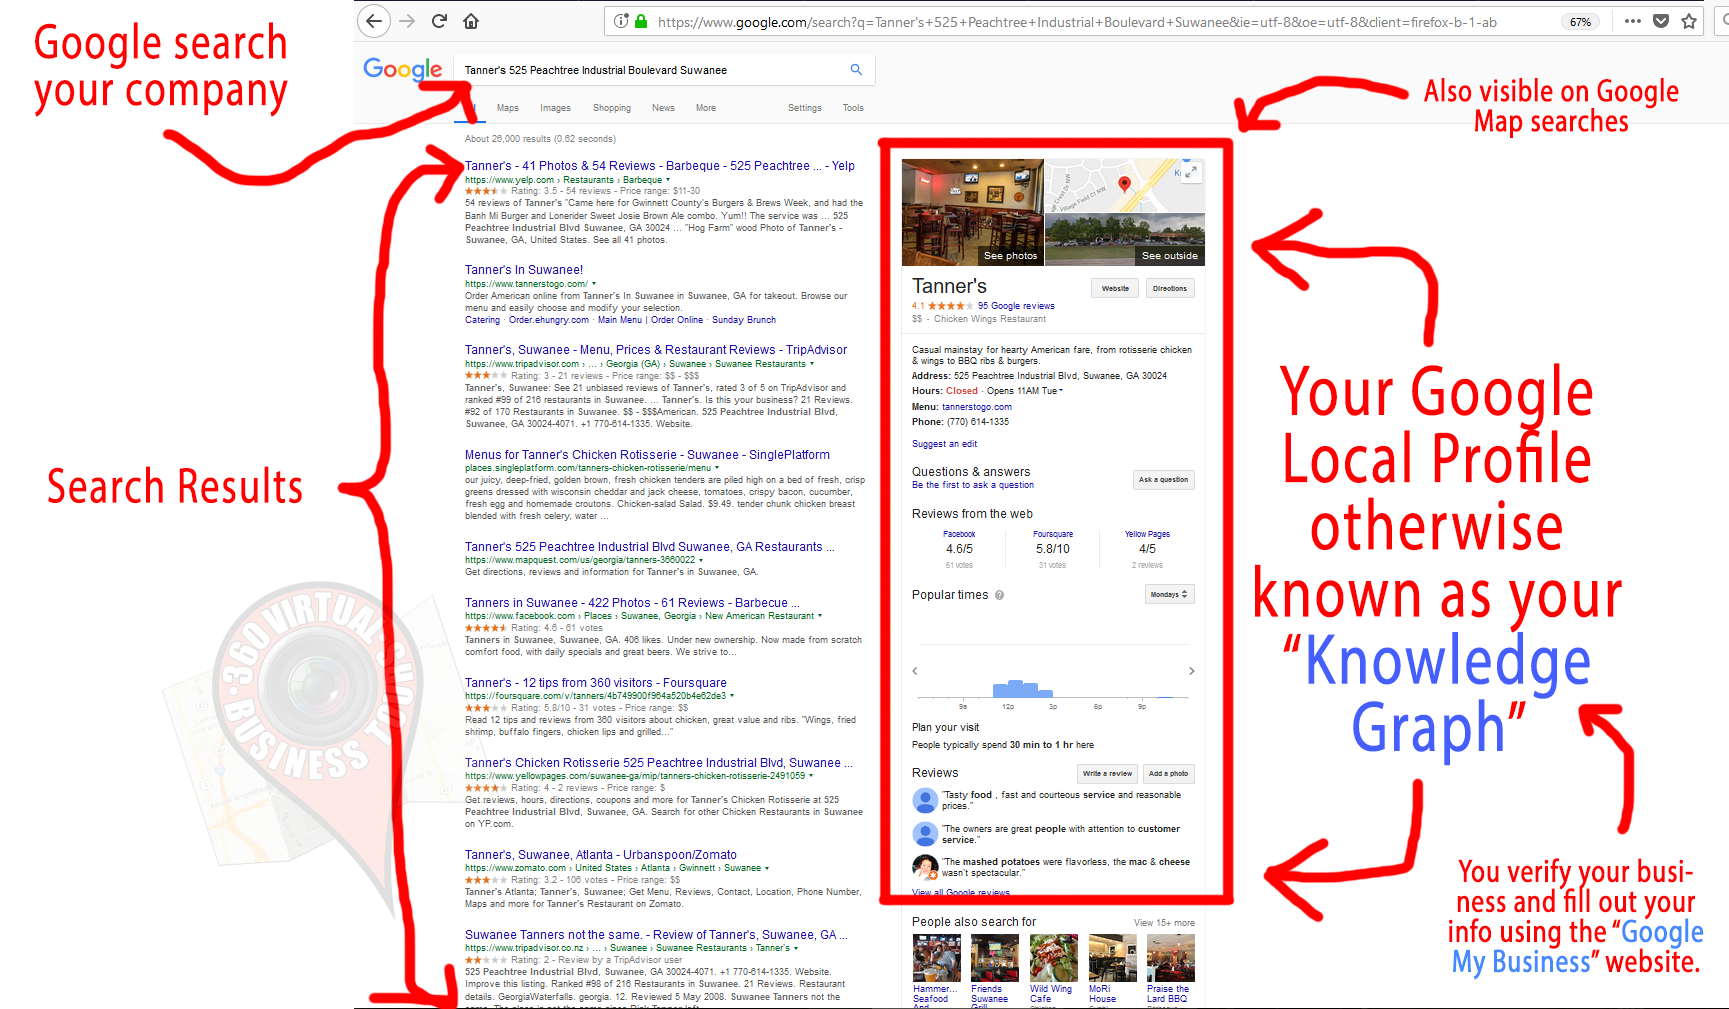 Google Knowledge Graph Explained